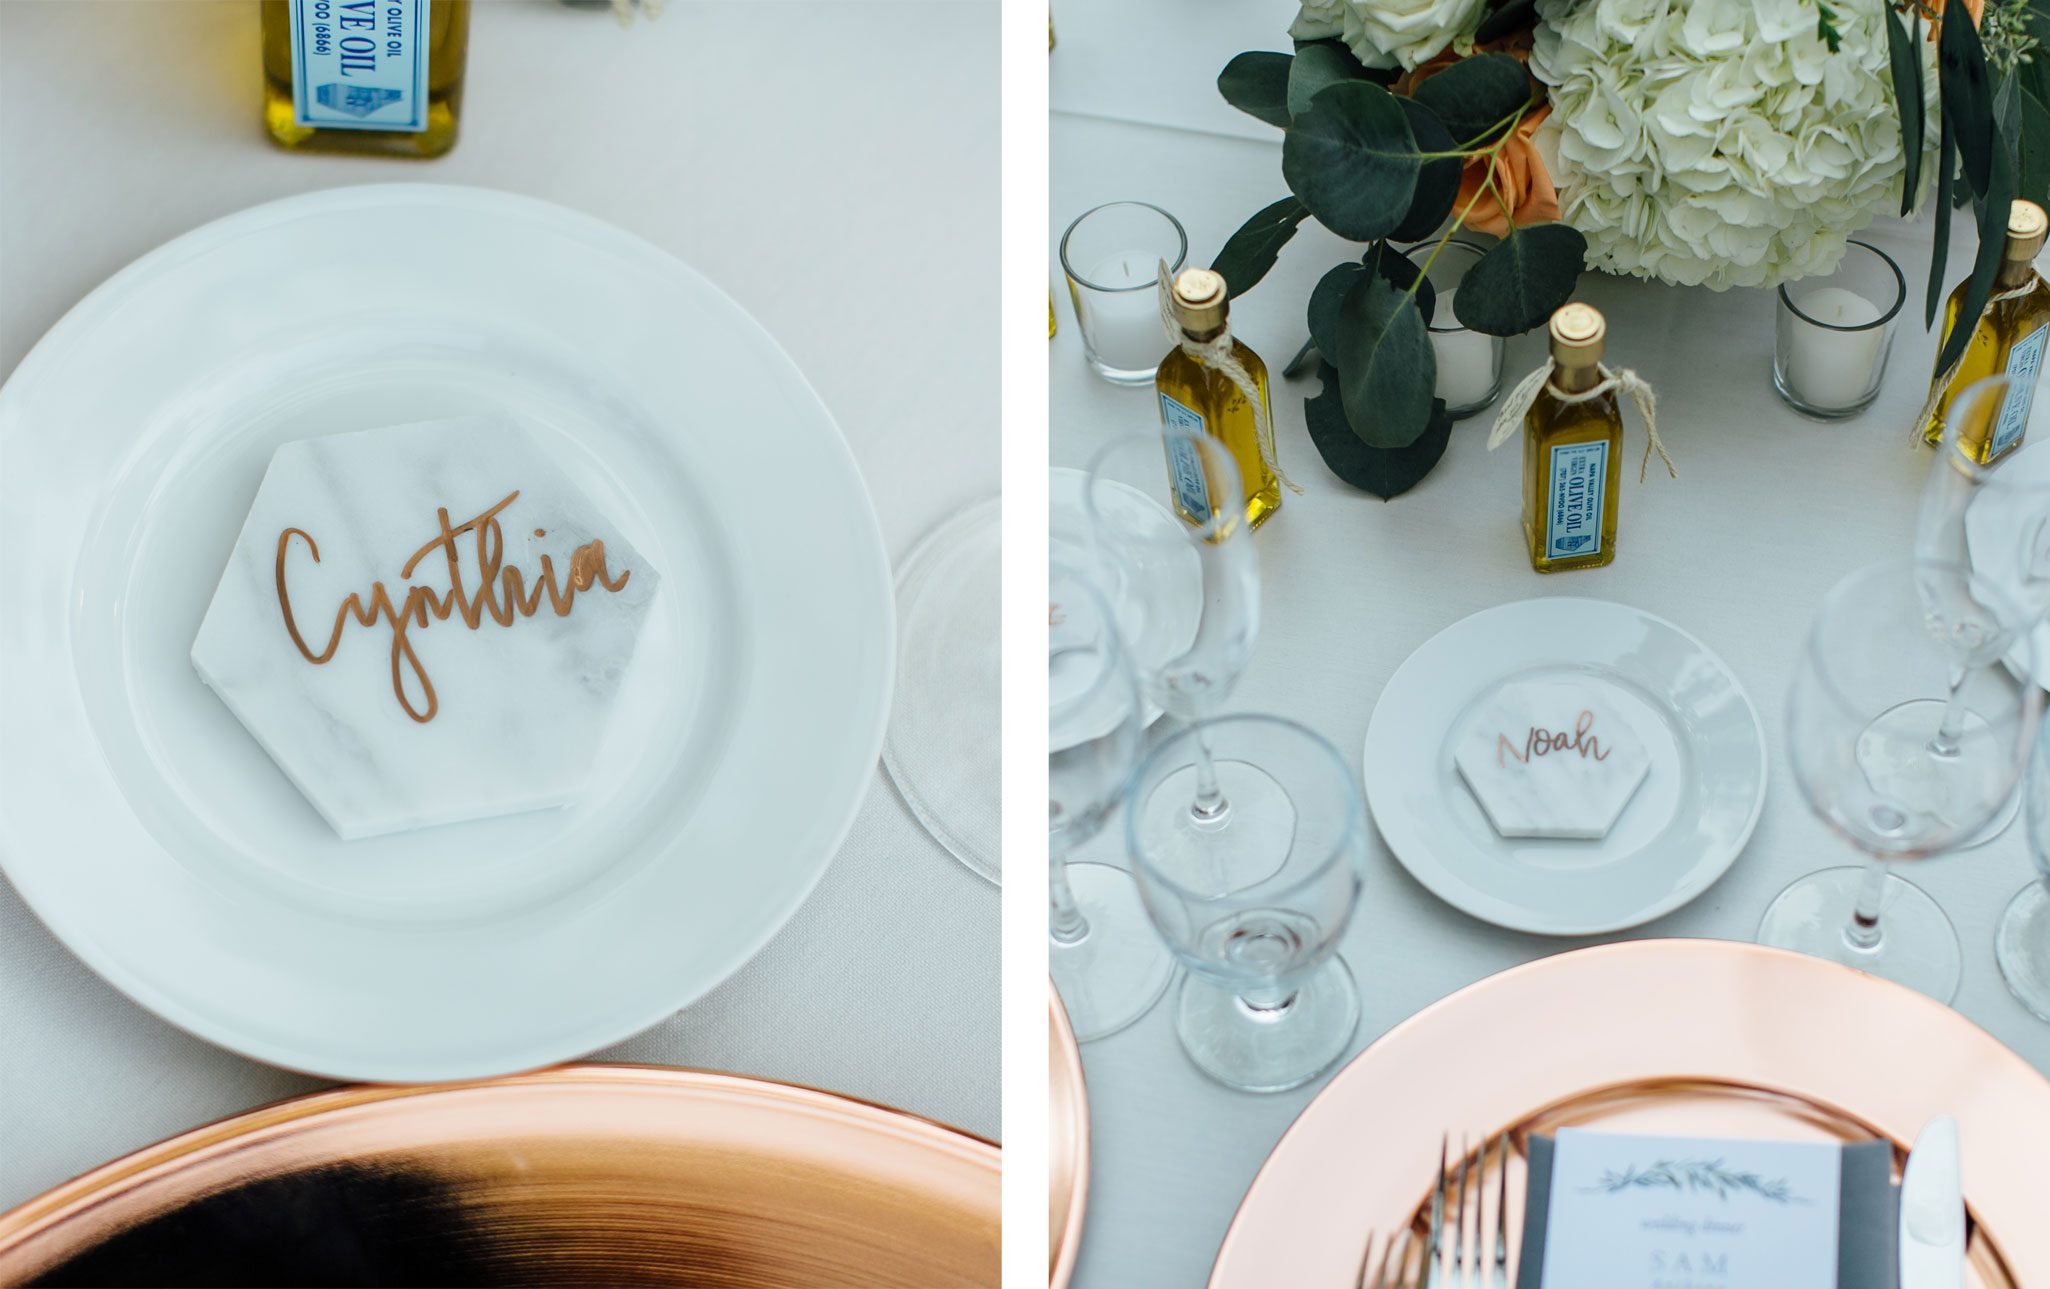 Carrara marble tile place cards with guest's names written in copper ink